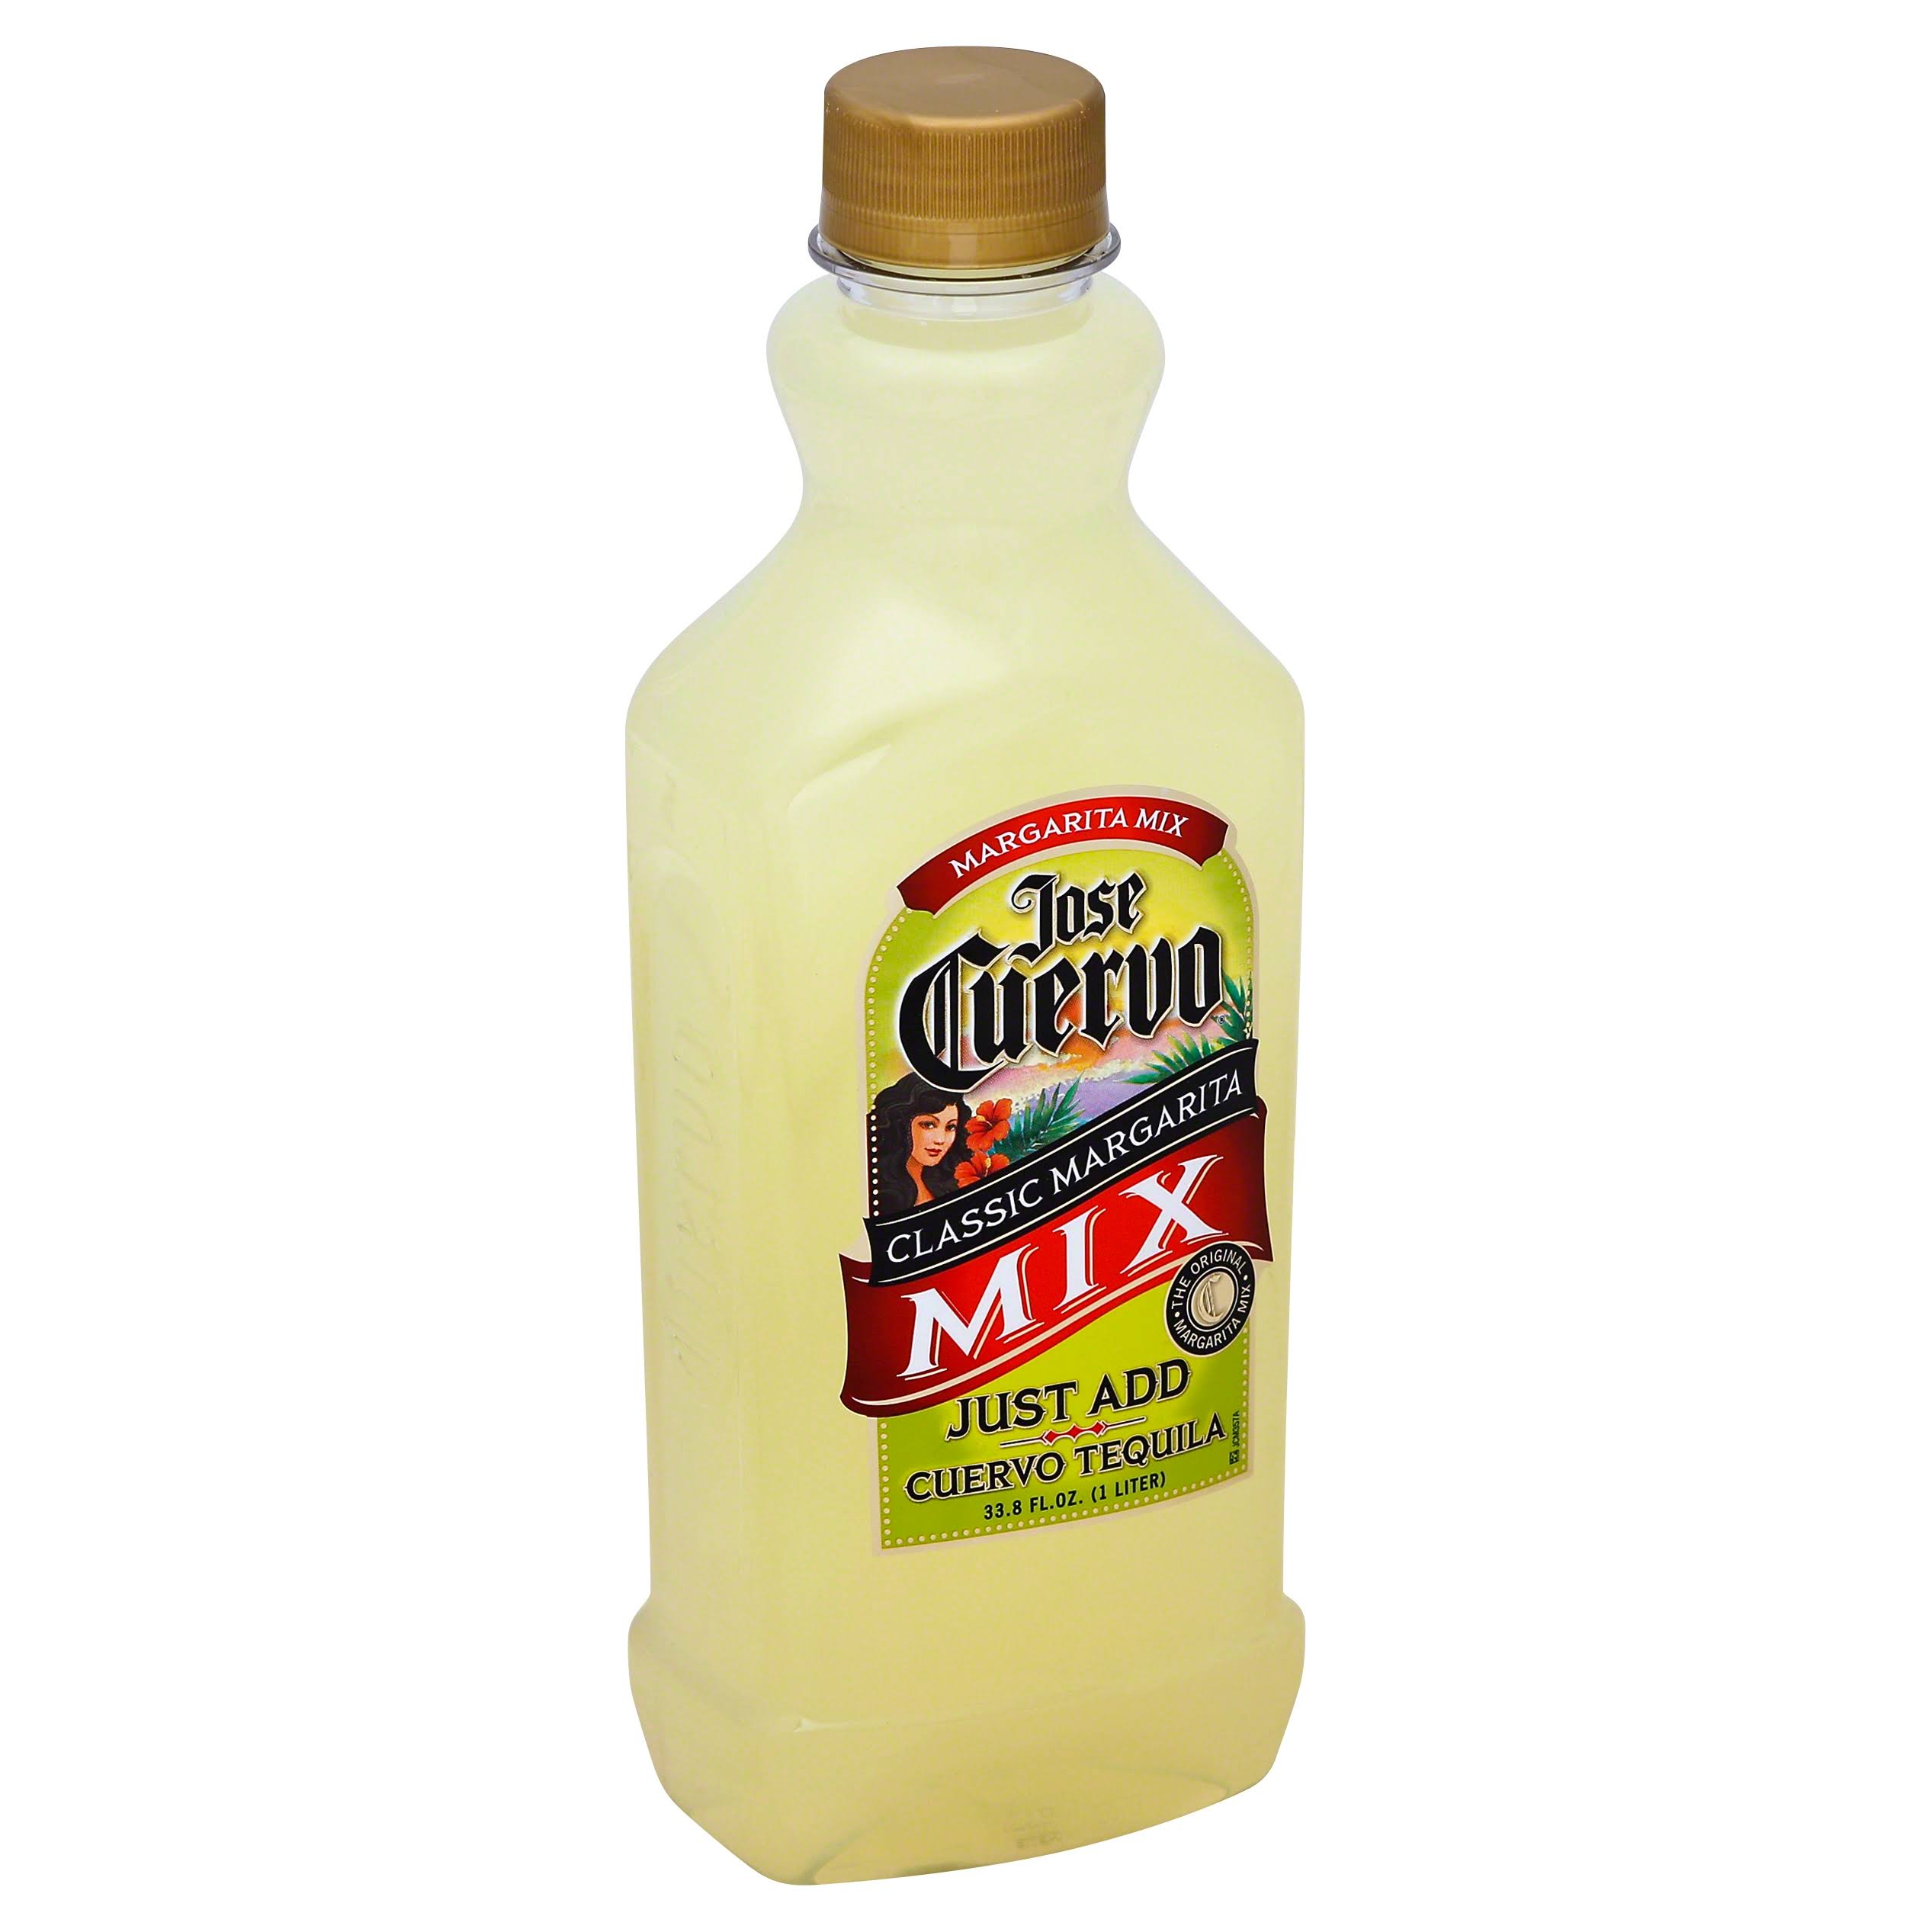 Jose Cuervo Margarita Mix - Classic Lime, 33.8oz